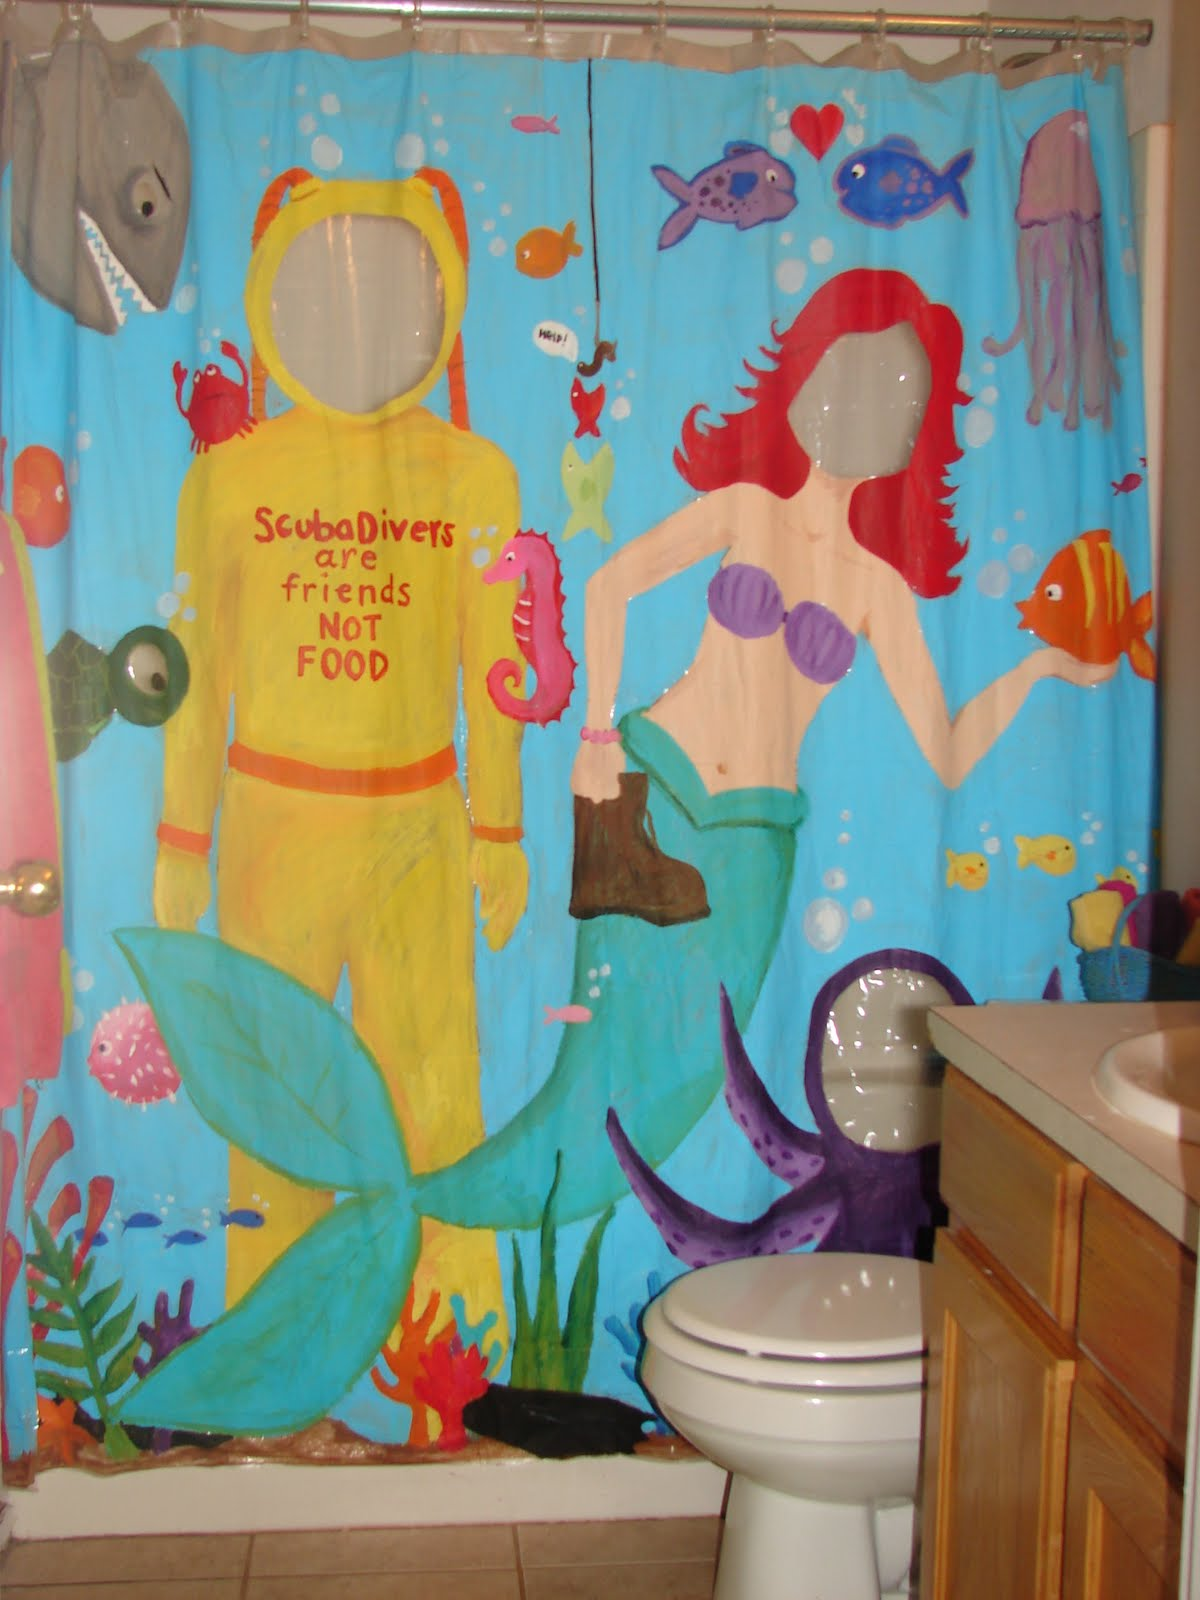 sytyc Painted Shower curtain - A girl and a glue gun